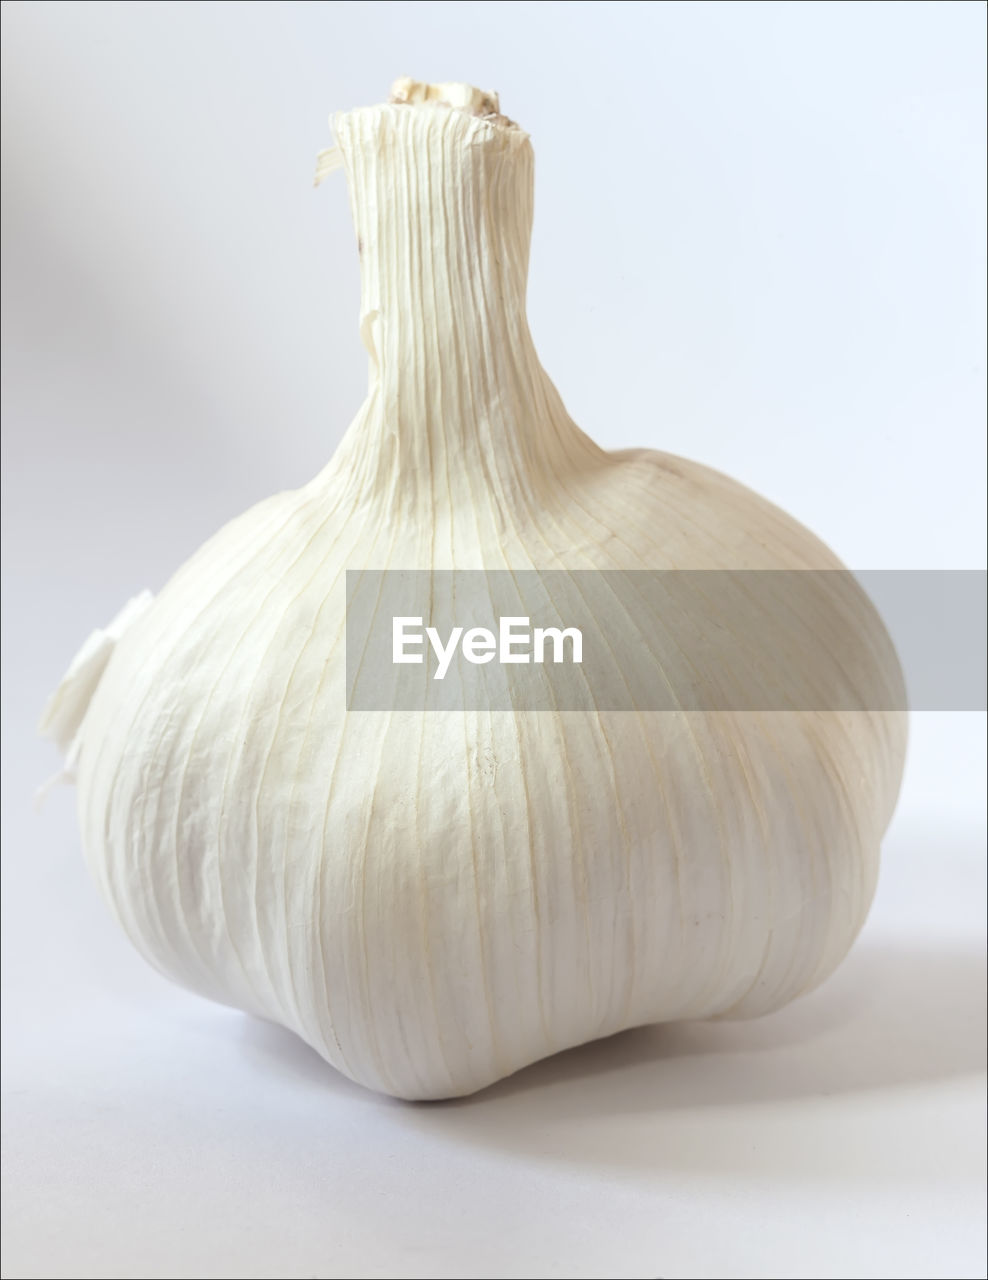 food and drink, food, garlic, close-up, vegetable, freshness, still life, indoors, studio shot, no people, ingredient, spice, garlic bulb, healthy eating, single object, white color, white background, wellbeing, focus on foreground, raw food, garlic clove